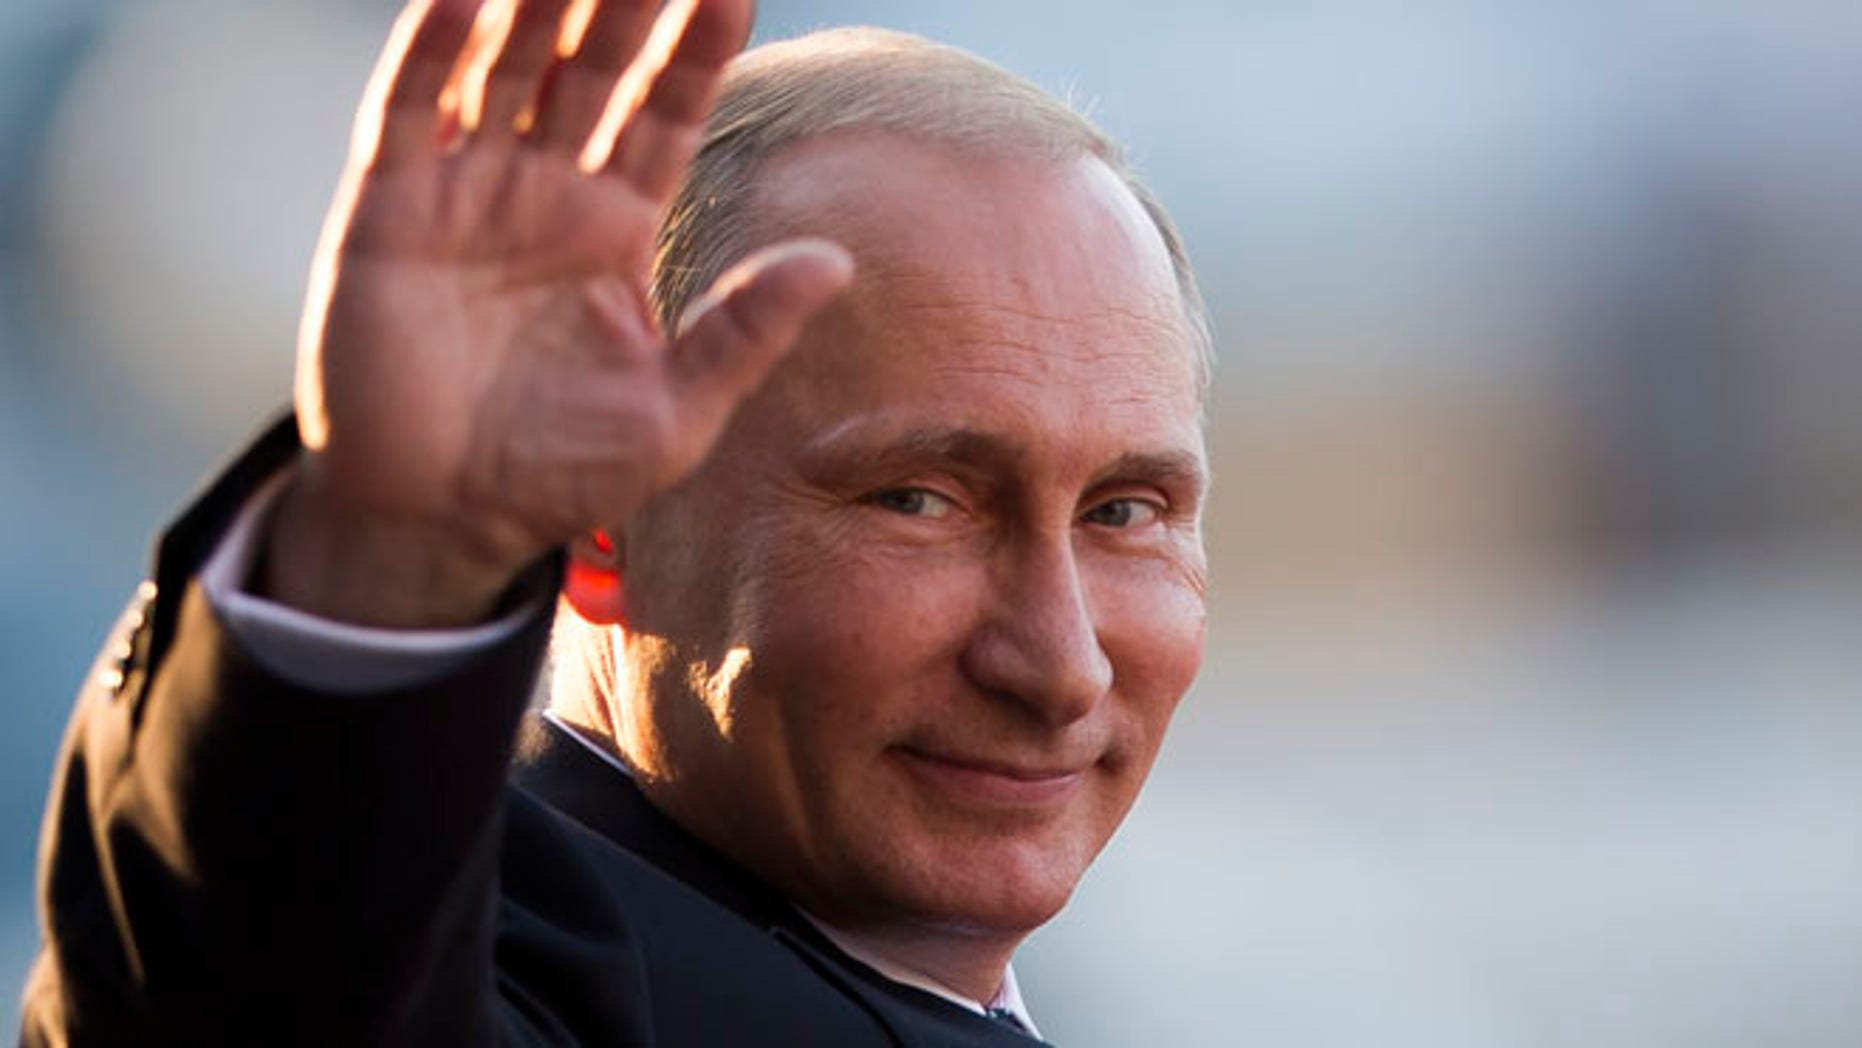 July 16, 2014: Russia's President Vladimir Putin waves to photographers as he leaves the Itamaraty Palace after attending the final day of the BRICS Summit in Brasilia, Brazil. (AP)